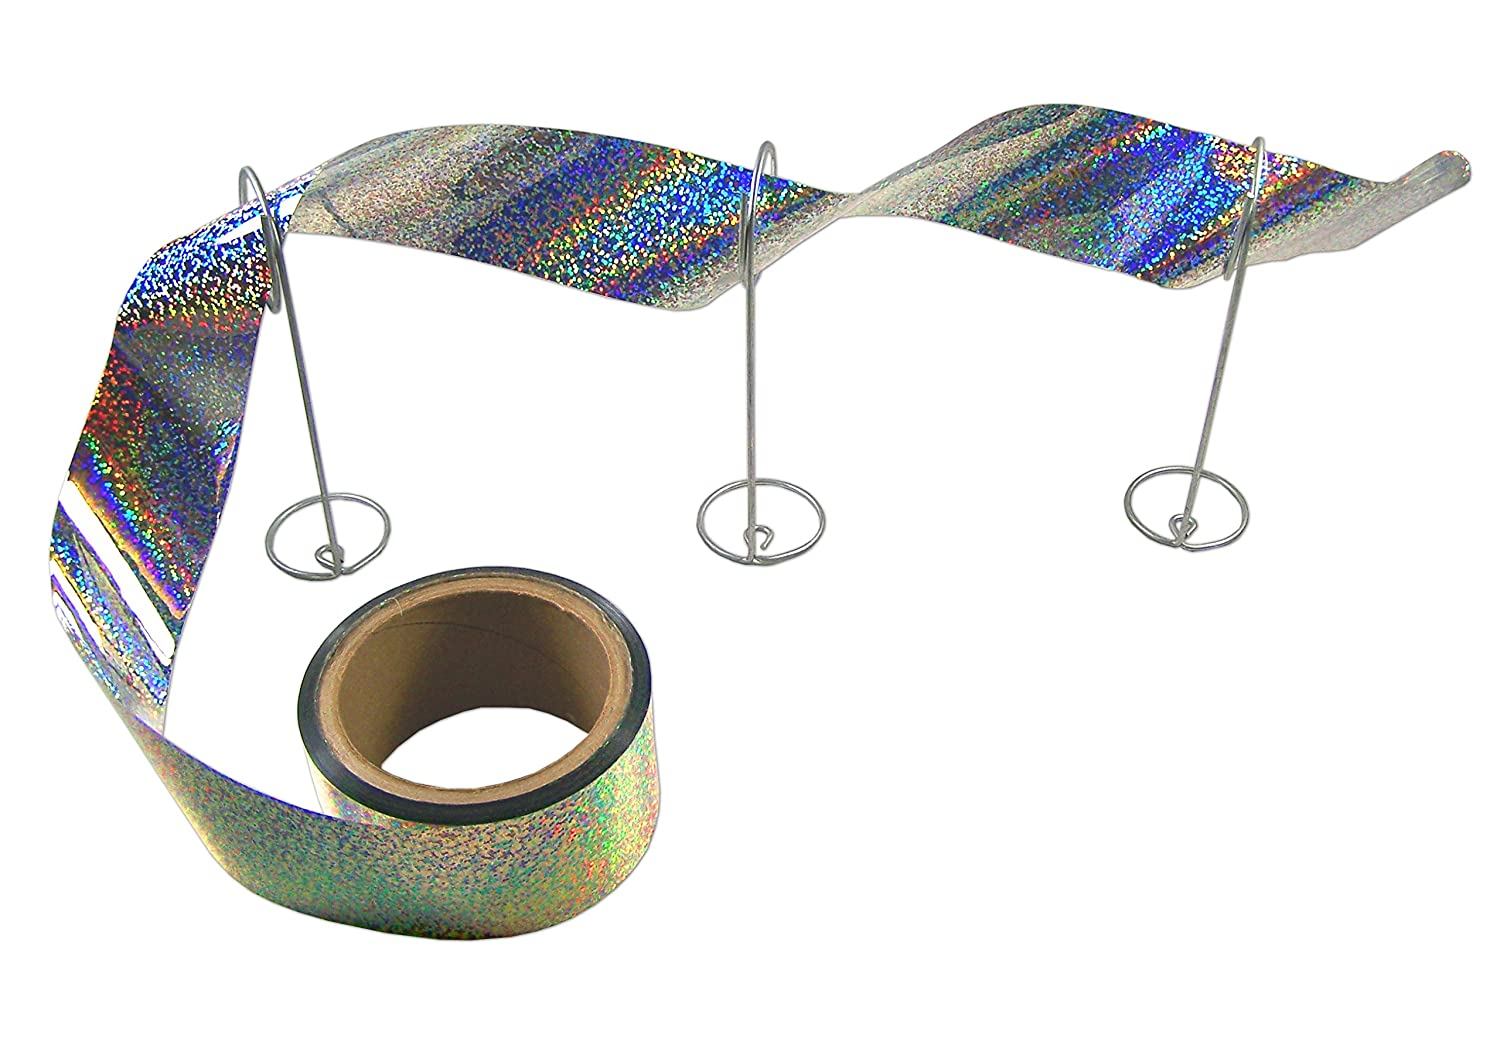 Bird-X Irri-Tape Holographic Iridescent Foil Bird Scare Tape, 2